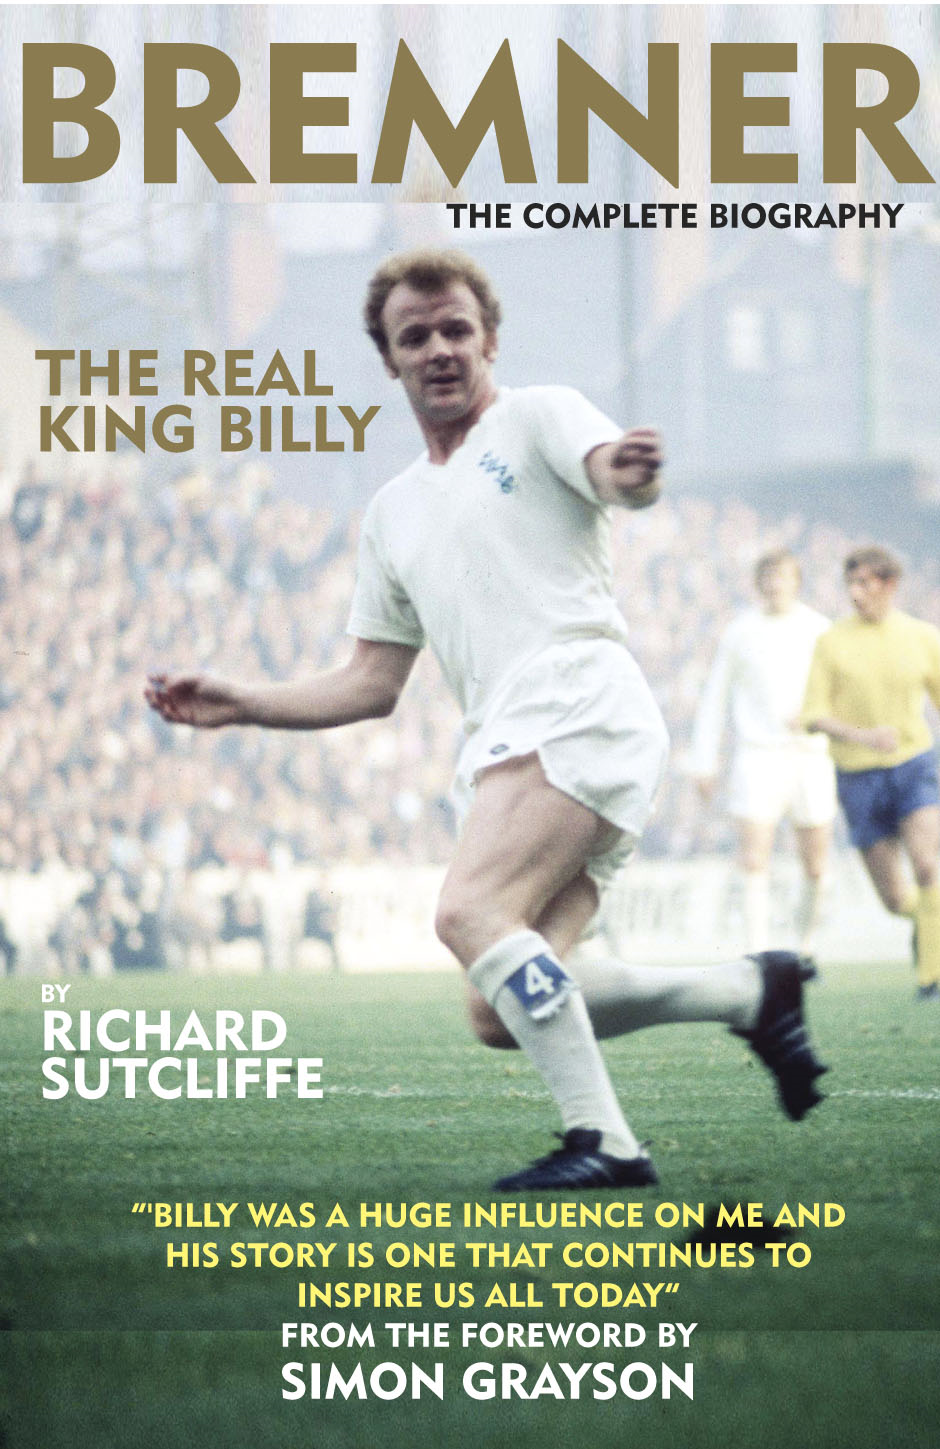 Bremner - The Real King Billy - THE COMPLETE BIOGRAPHY